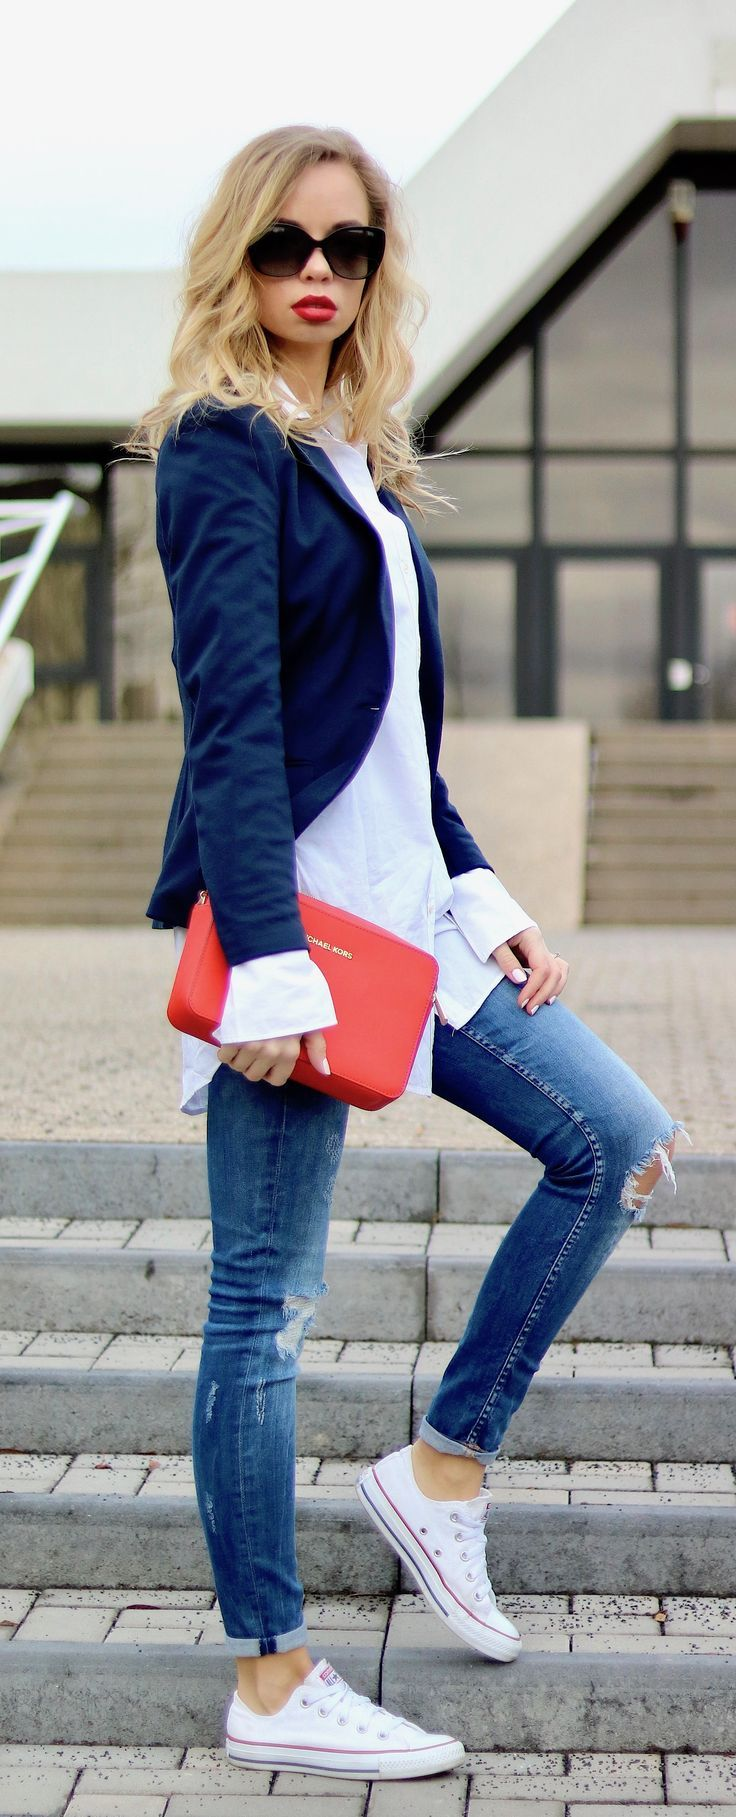 Outfit-Style-Fashion-Streetstyle-Casual-Casual Chic-Blazer-Red Lips-Look-Outfit of the day-ootd-Clutch-Red-Blue-Jeans... - Street Chic Looks